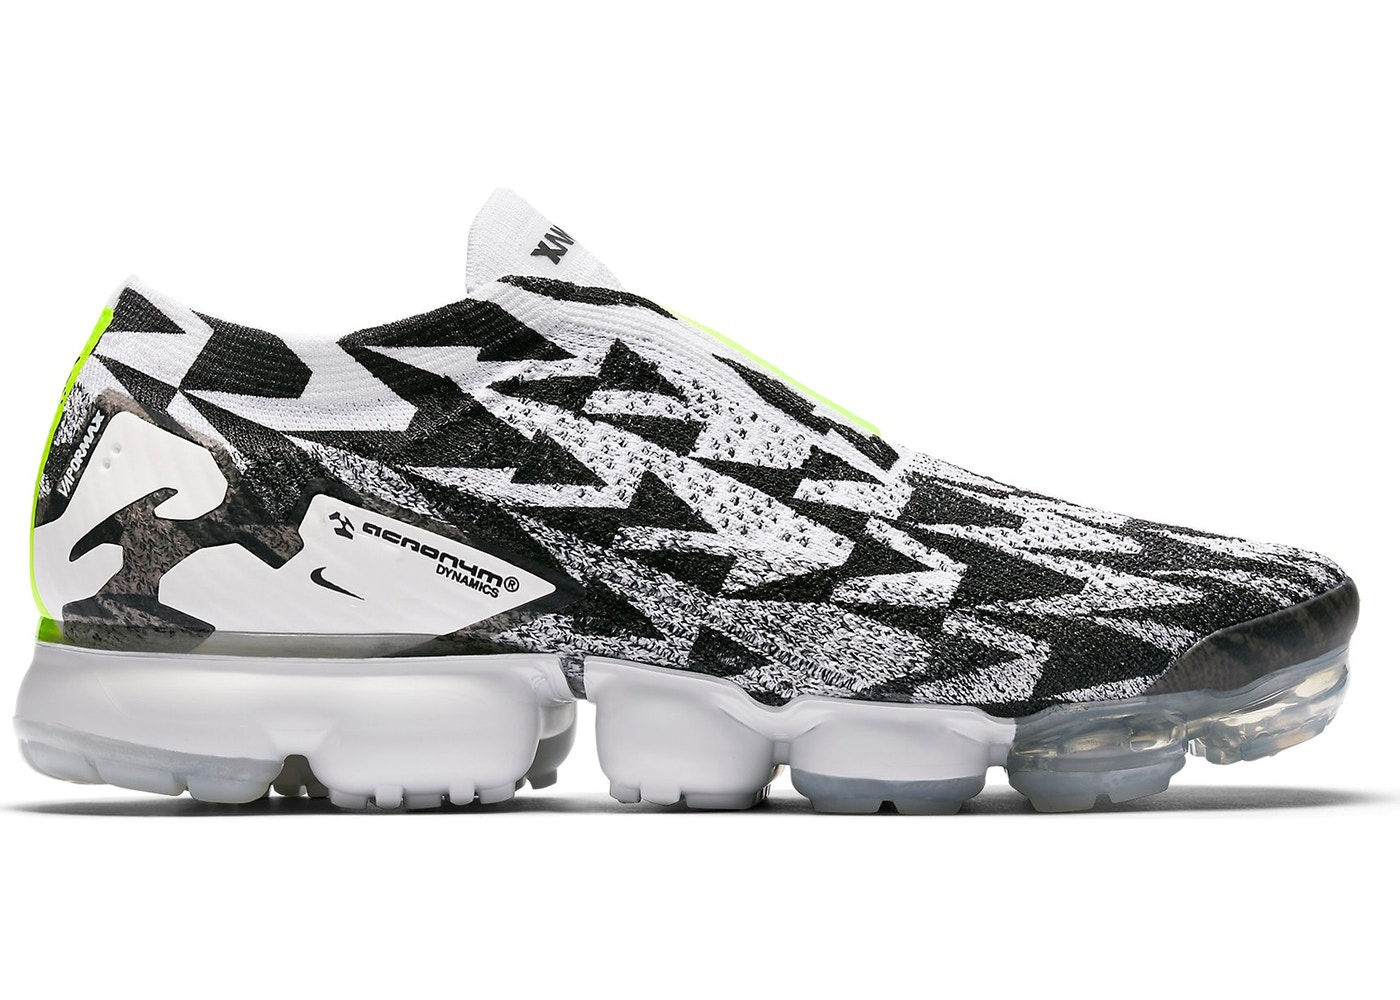 213e9628c0c Buy Air Max VaporMax Shoes   Deadstock Sneakers